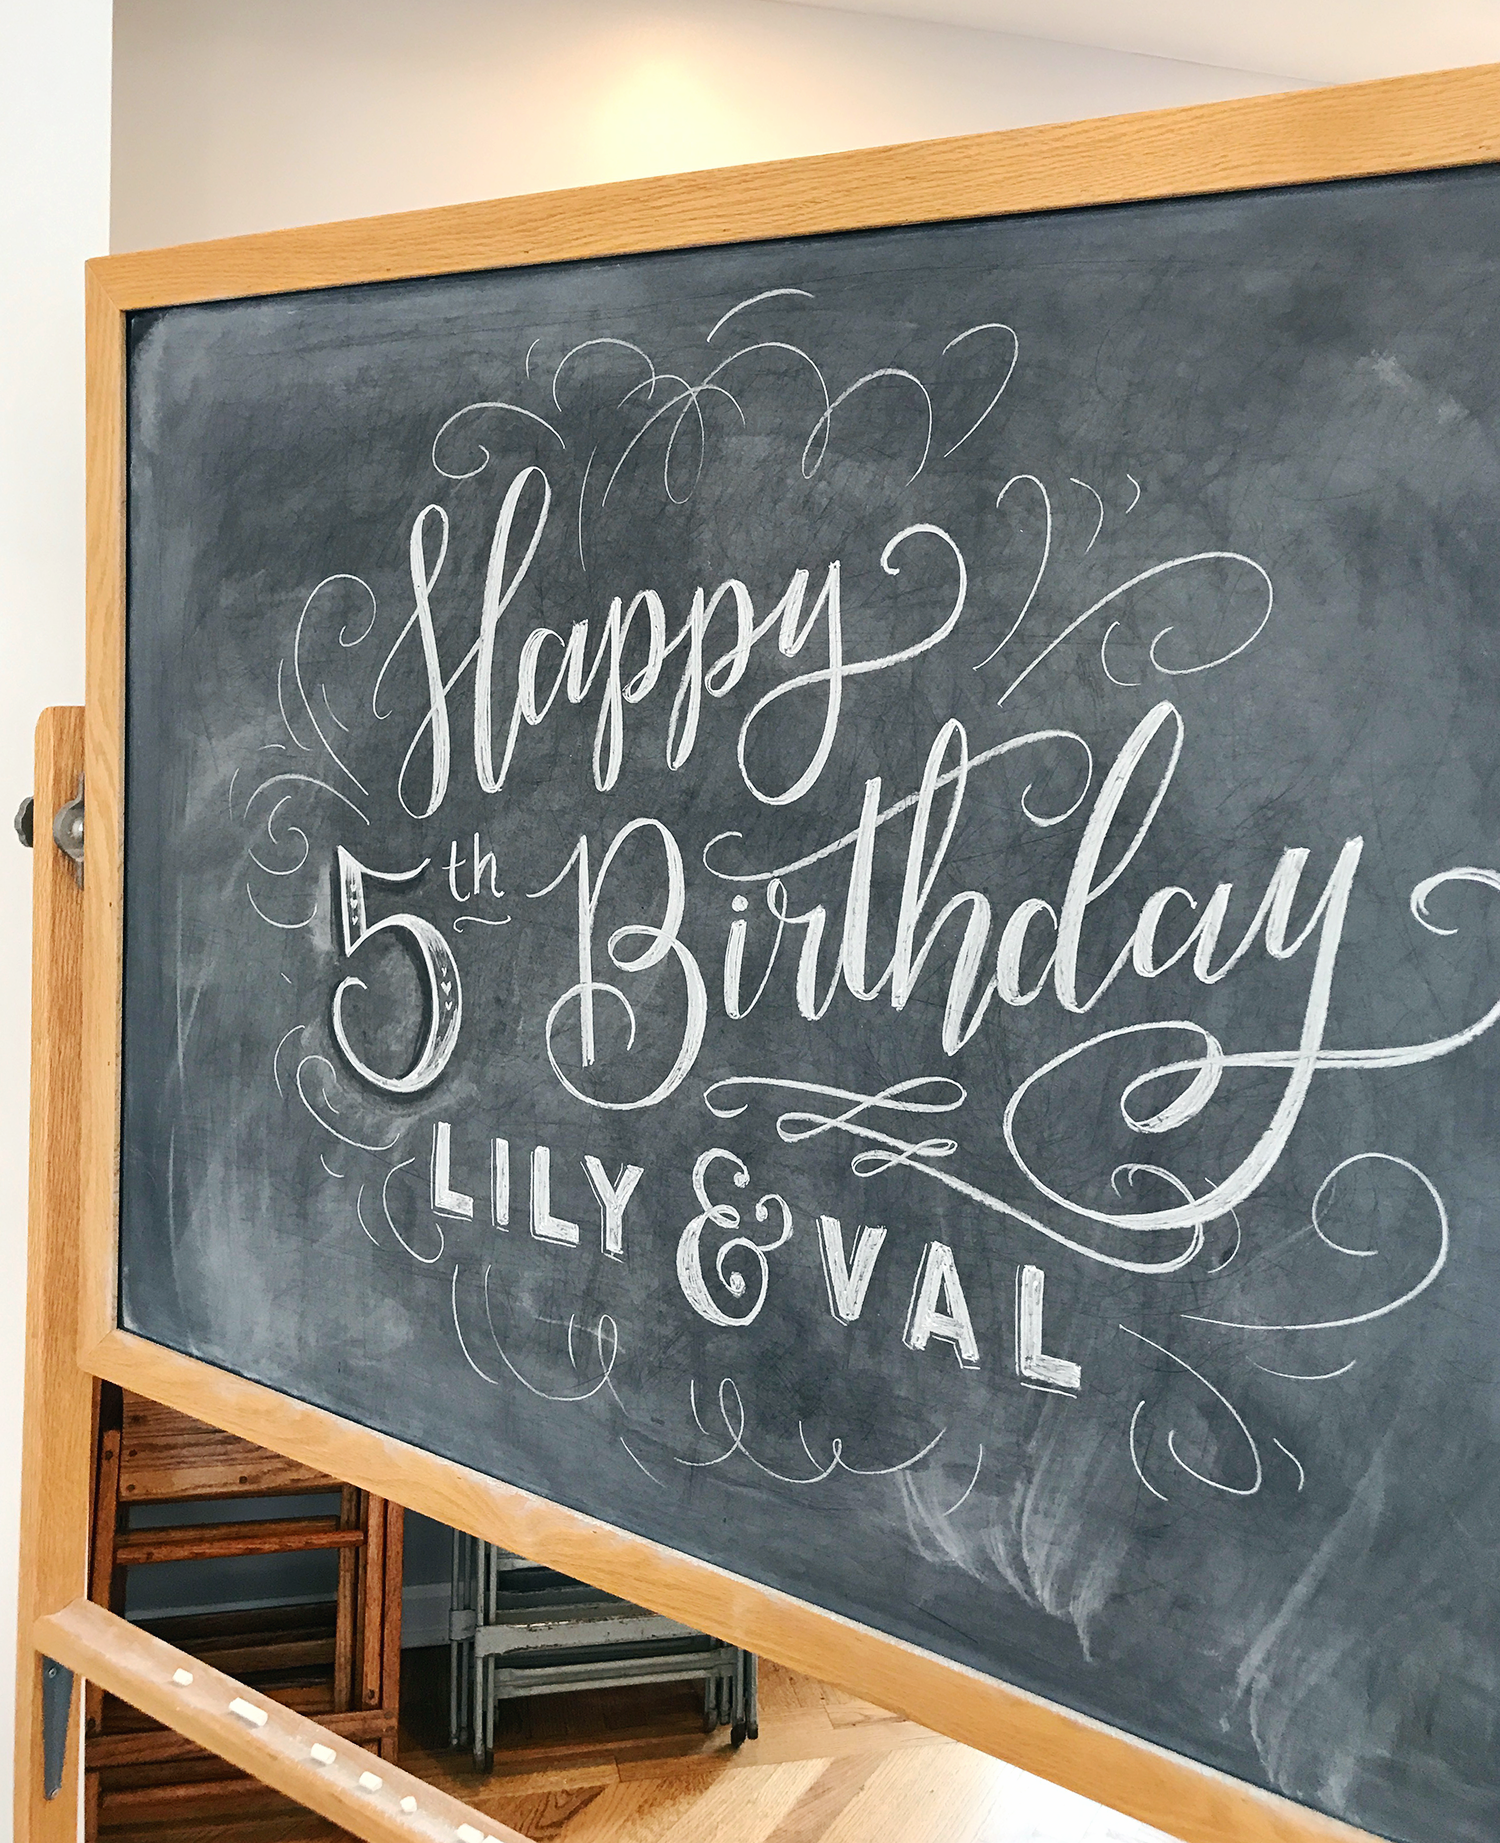 Lily & Val turns 5 today! Thank you for an amazing 5 years